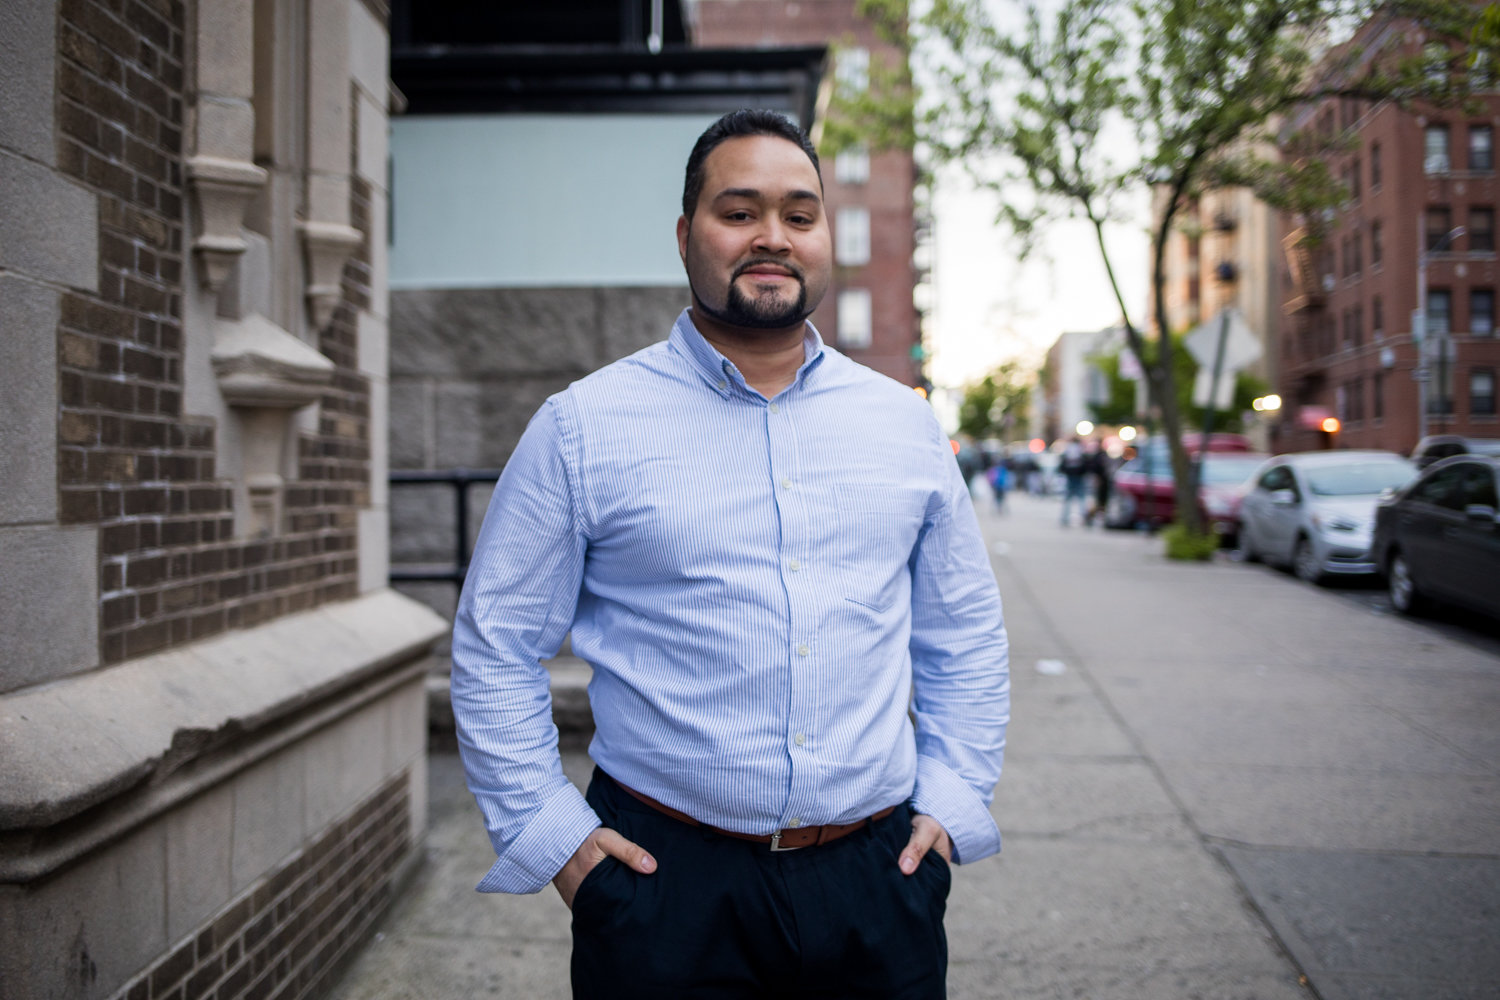 George Diaz Jr., in his campaign against Assemblyman Jeffrey Dinowitz, hopes to make his progressive platform a reality. In the meantime, he has the unique distinction of being Dinowitz's first-ever primary challenger.